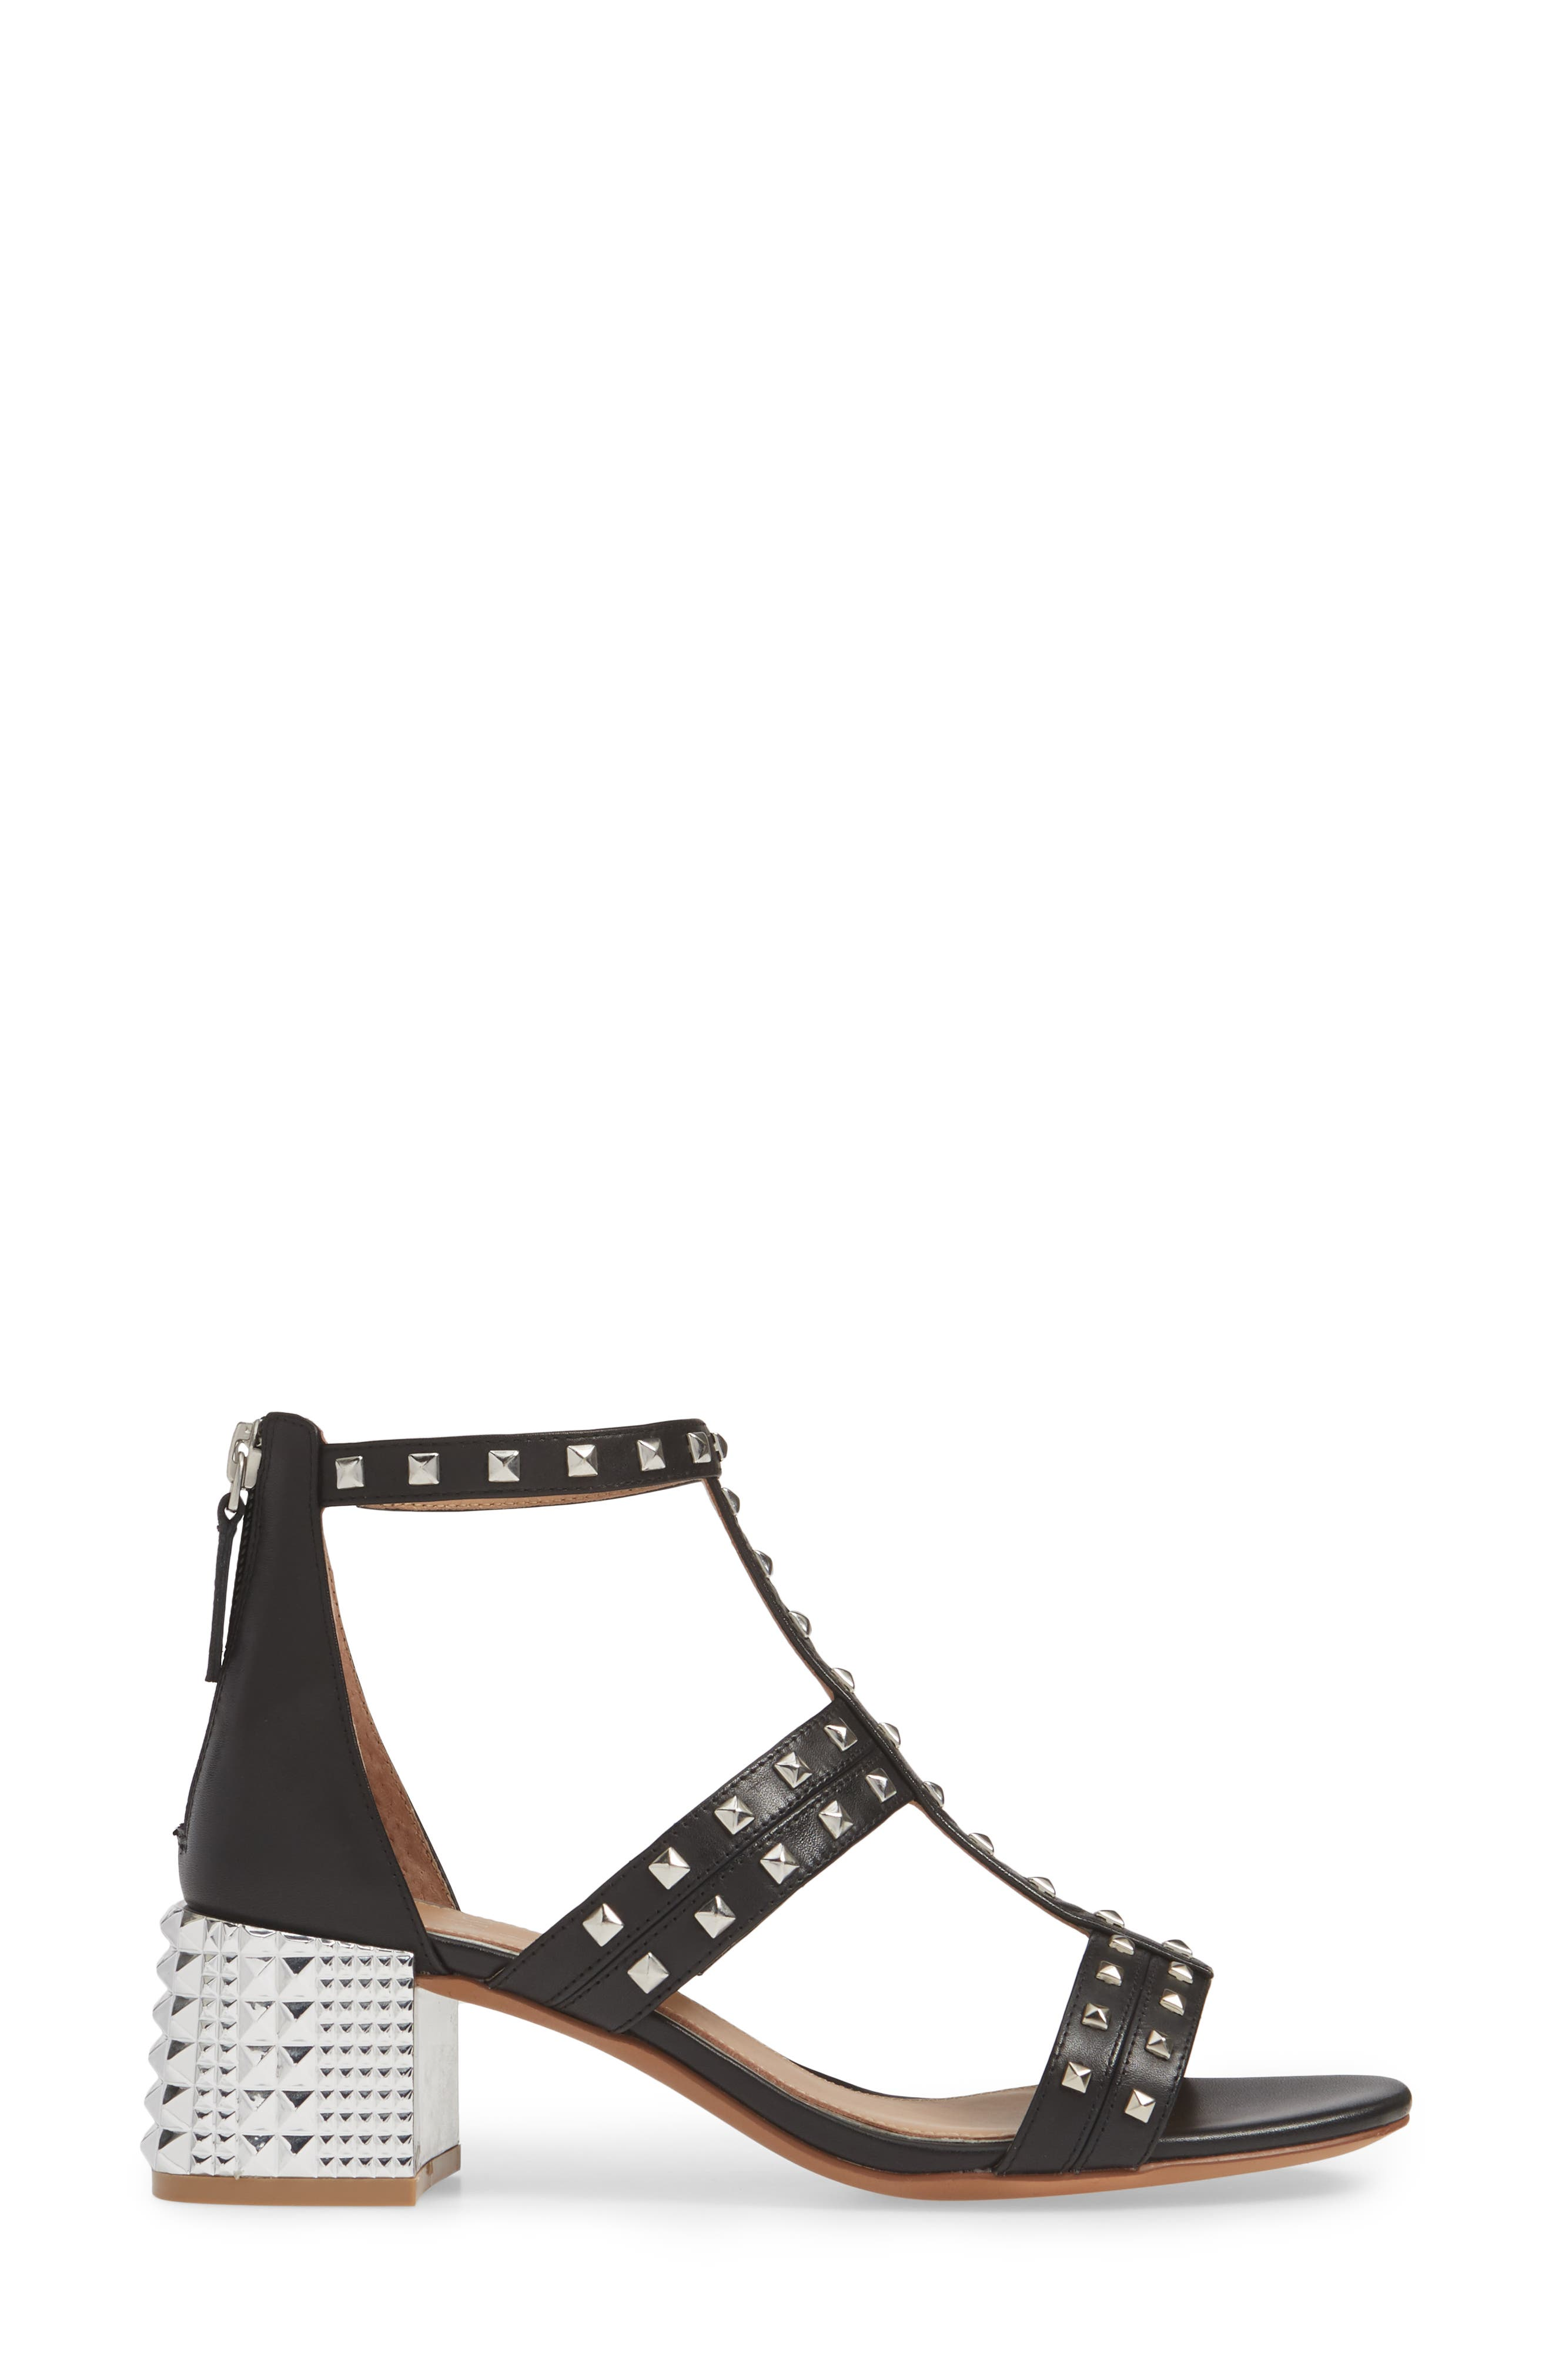 LINEA PAOLO, Harley Sandal, Alternate thumbnail 3, color, BLACK LEATHER